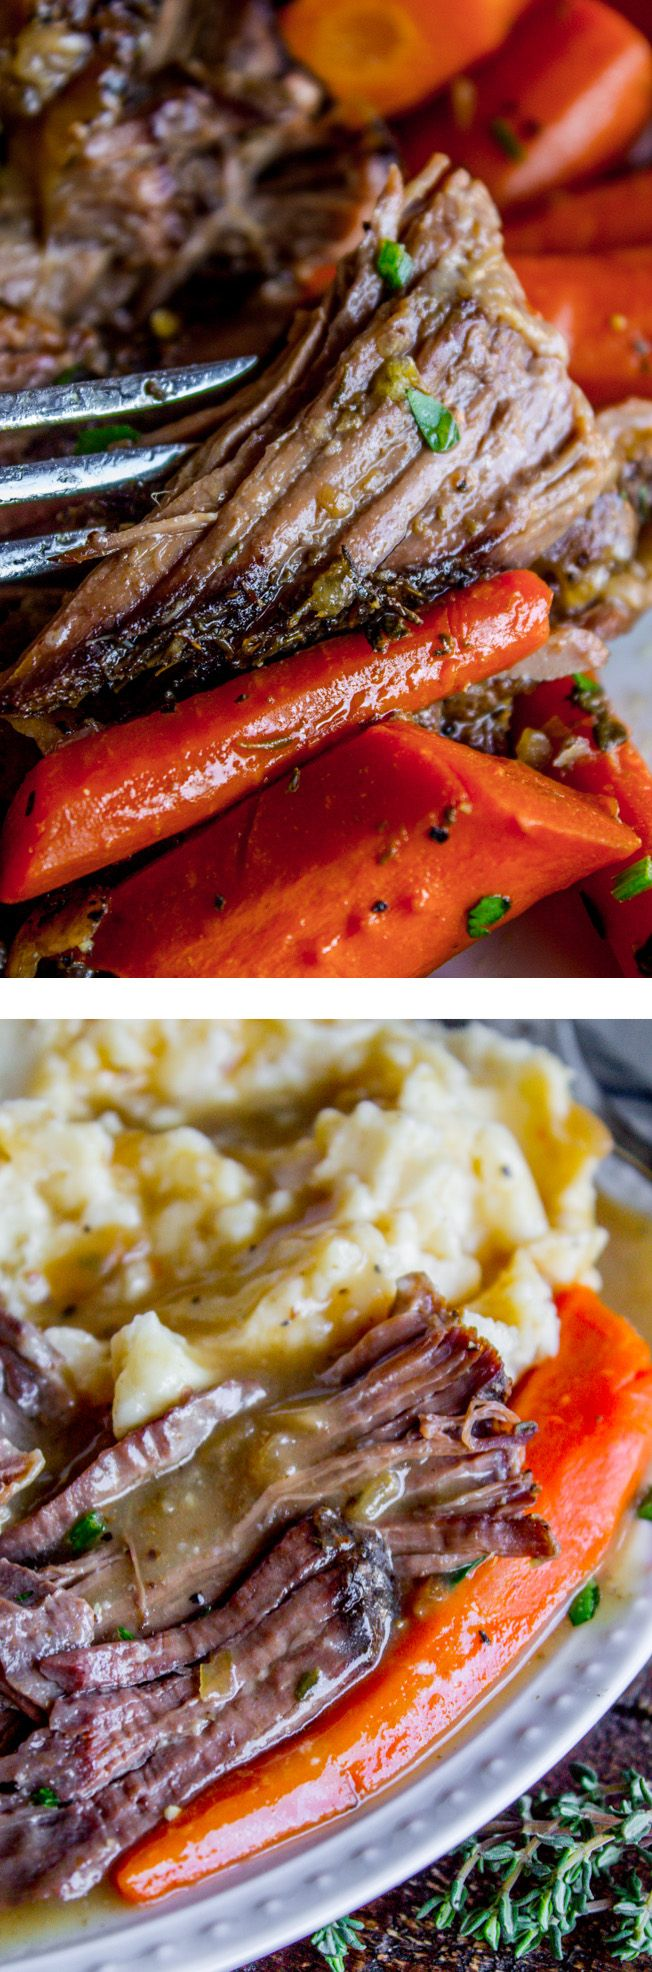 Easy Fall-Apart Pot Roast with Carrots (Slow Cooker) from The Food Charlatan.